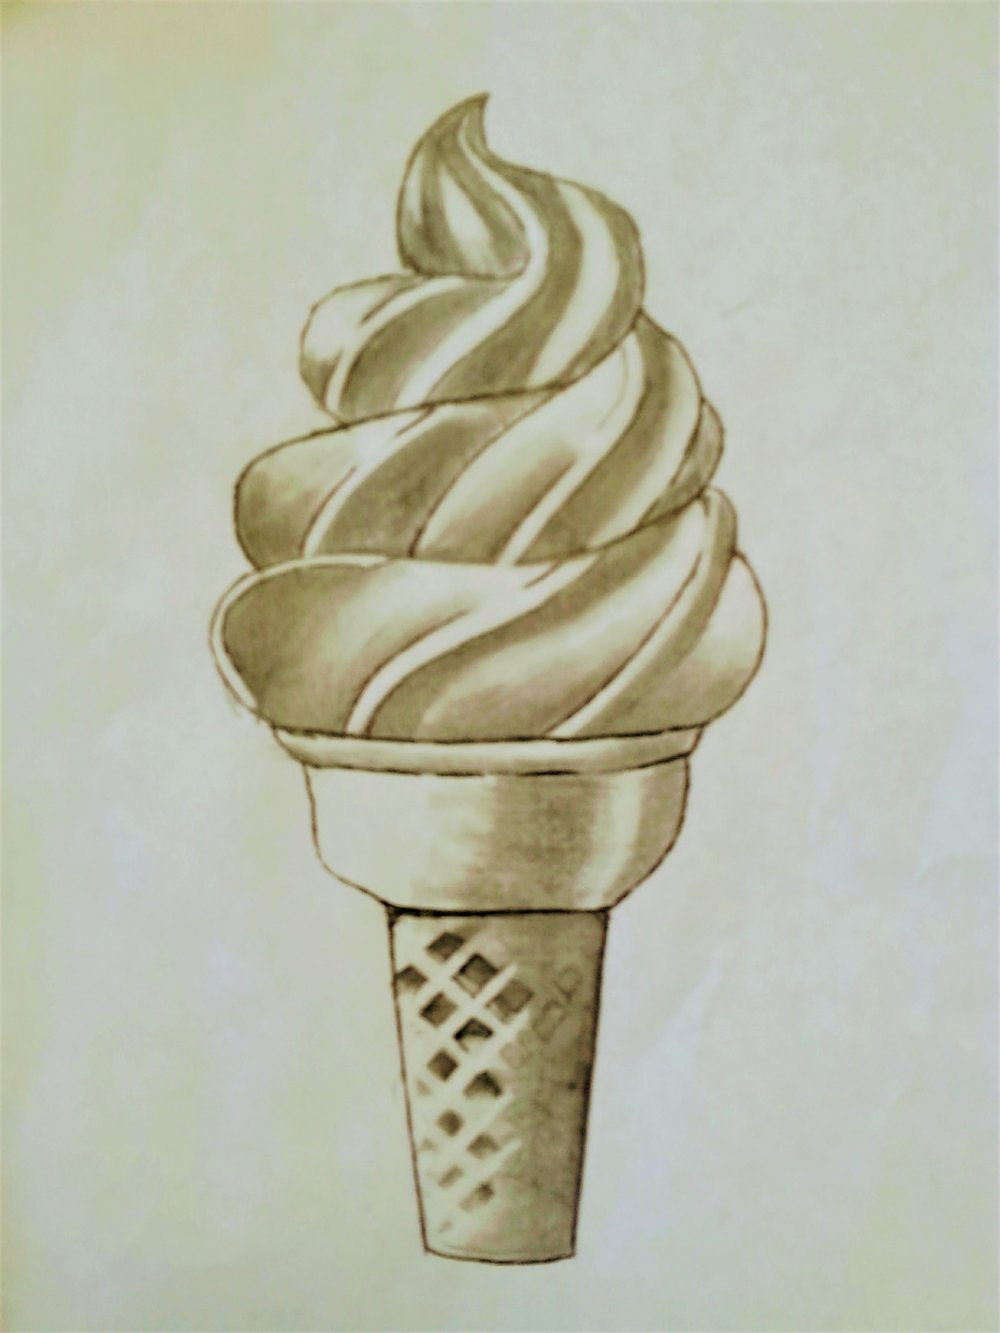 Jessica_IceCream_Pencil_Sepia 2017_1.jpg